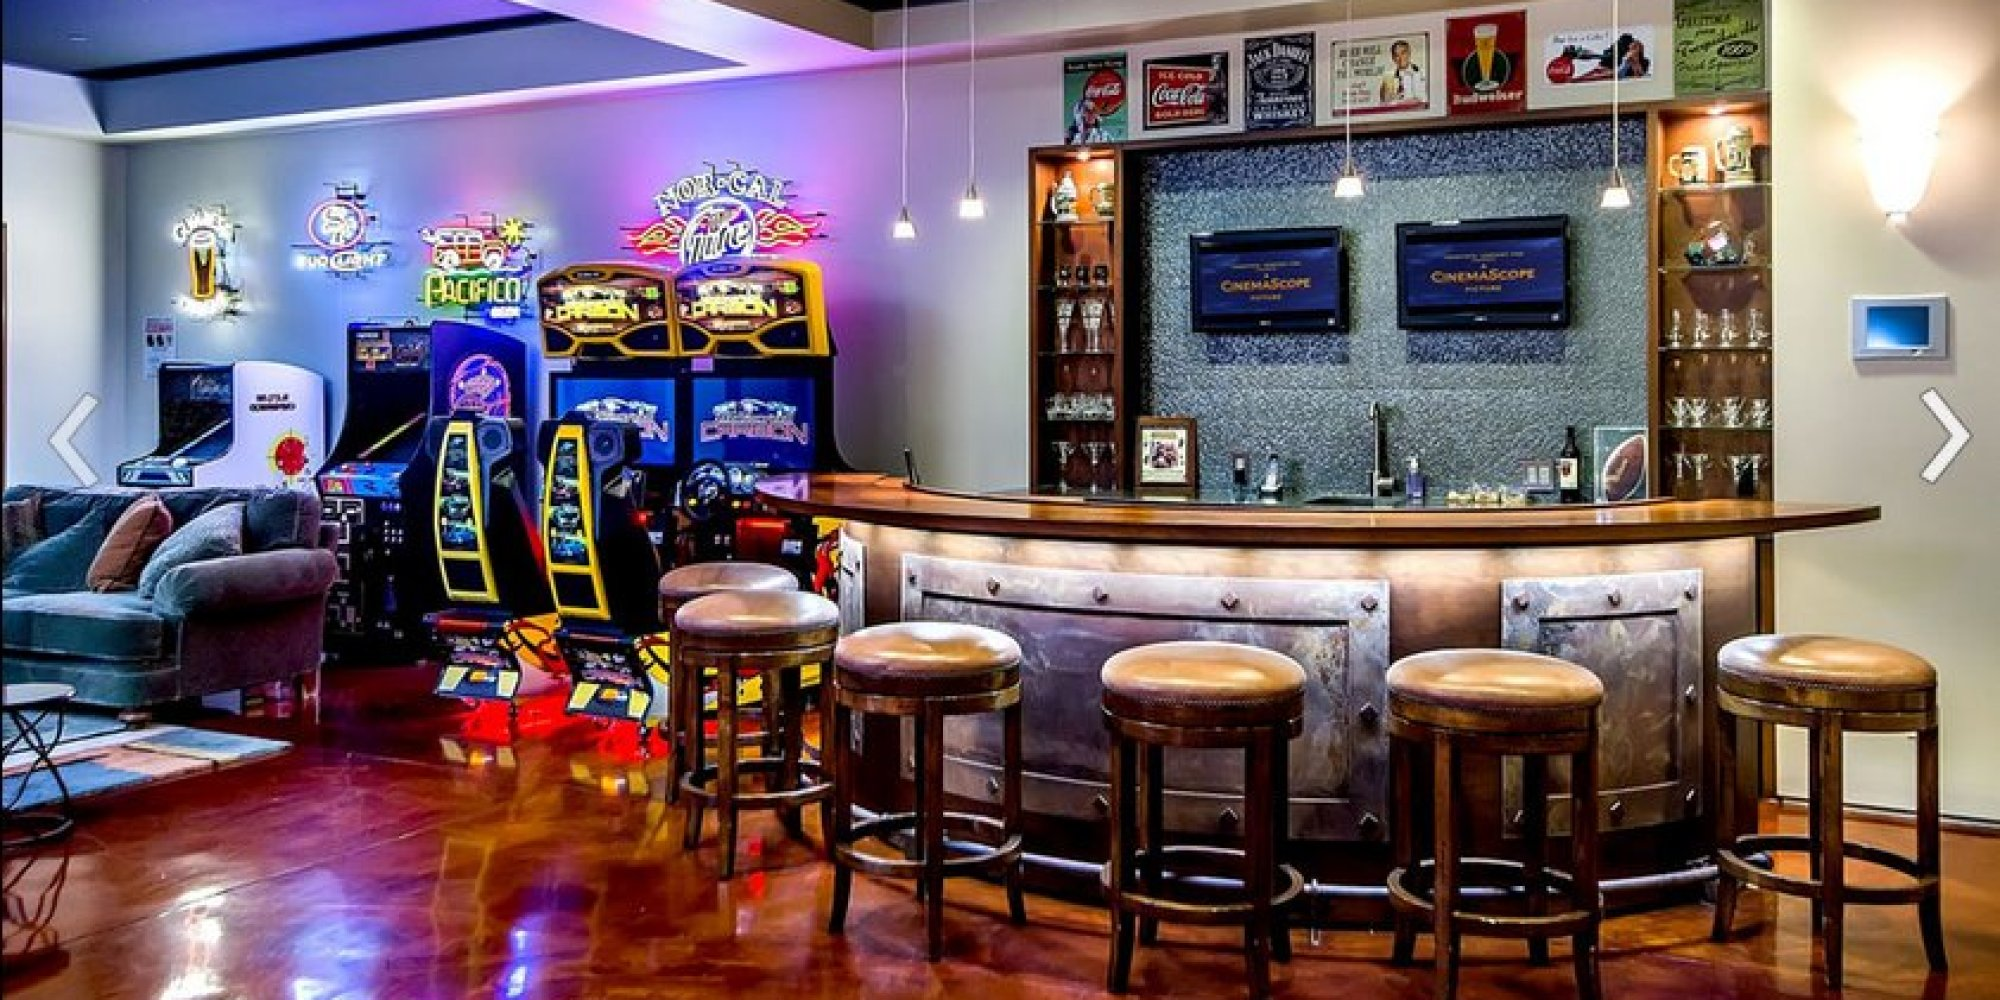 Awesome Arcade Room With Full Bar Is The Room Youd Never